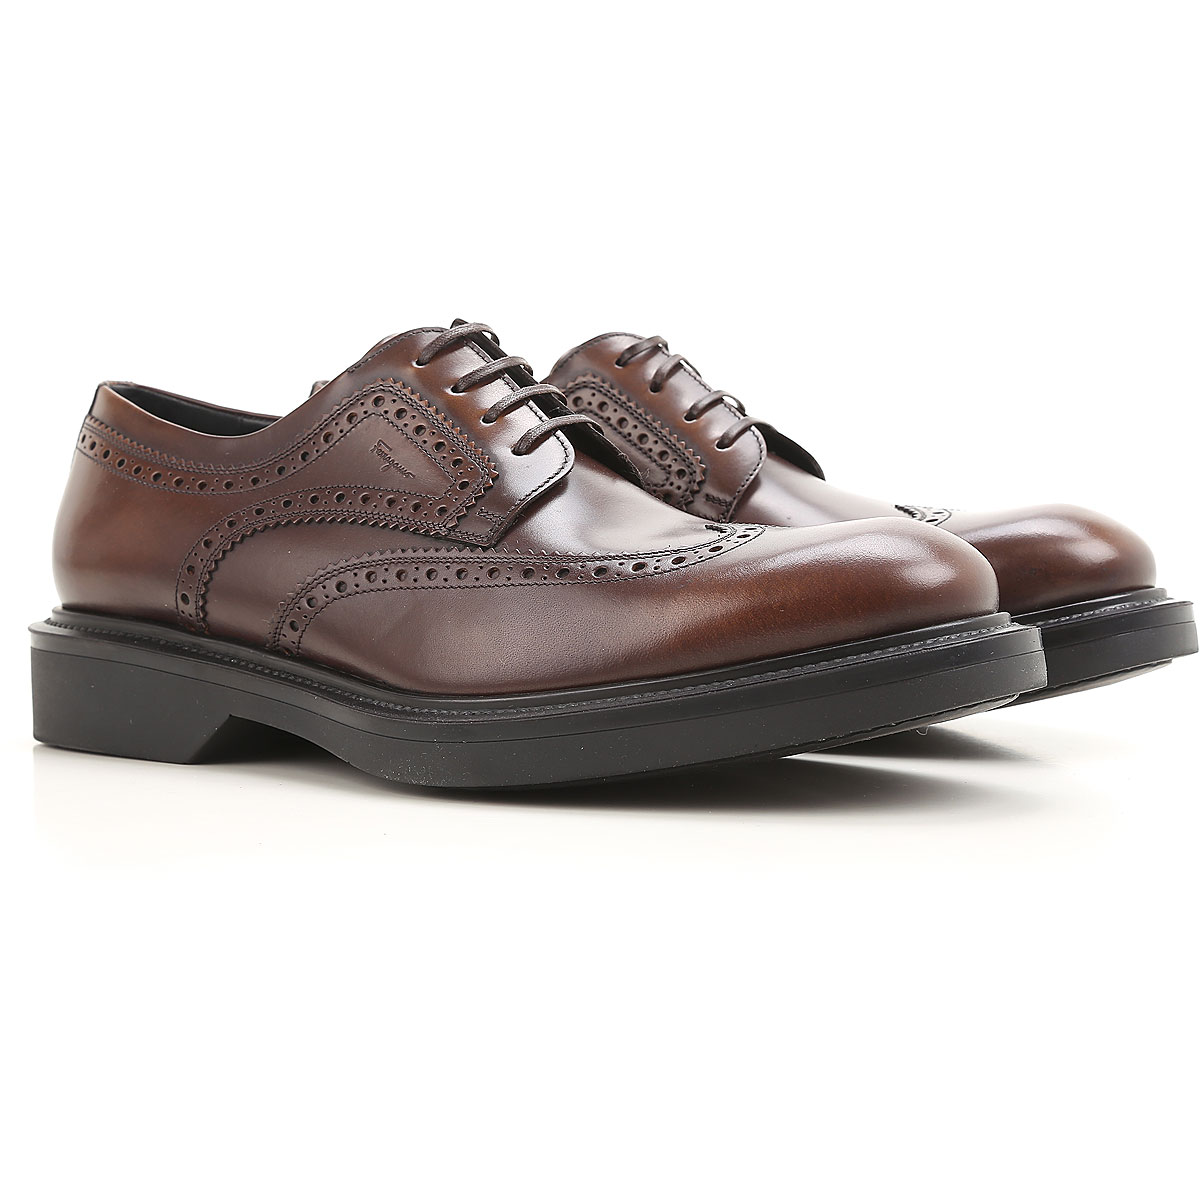 Image of Salvatore Ferragamo Brogue Shoes On Sale in Outlet, Brown, Leather, 2017, 10.5 11.5 9.5